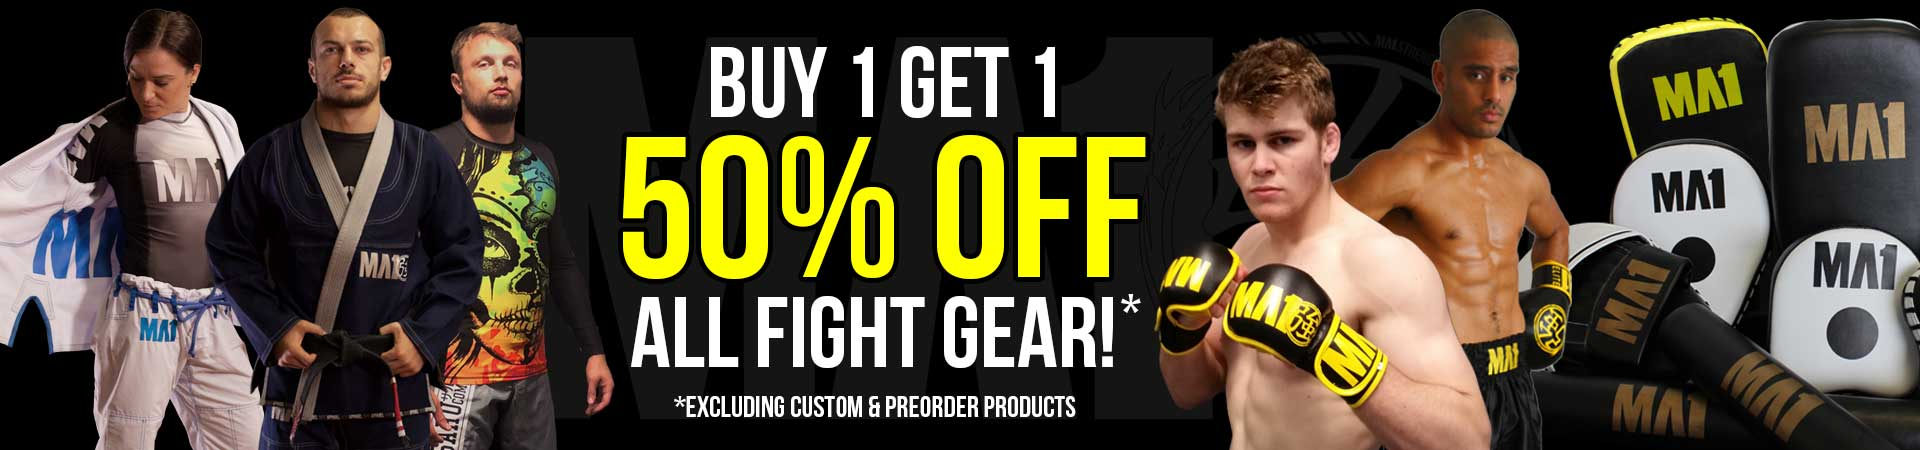 Buy 1 get 1 50% off Fight Gear